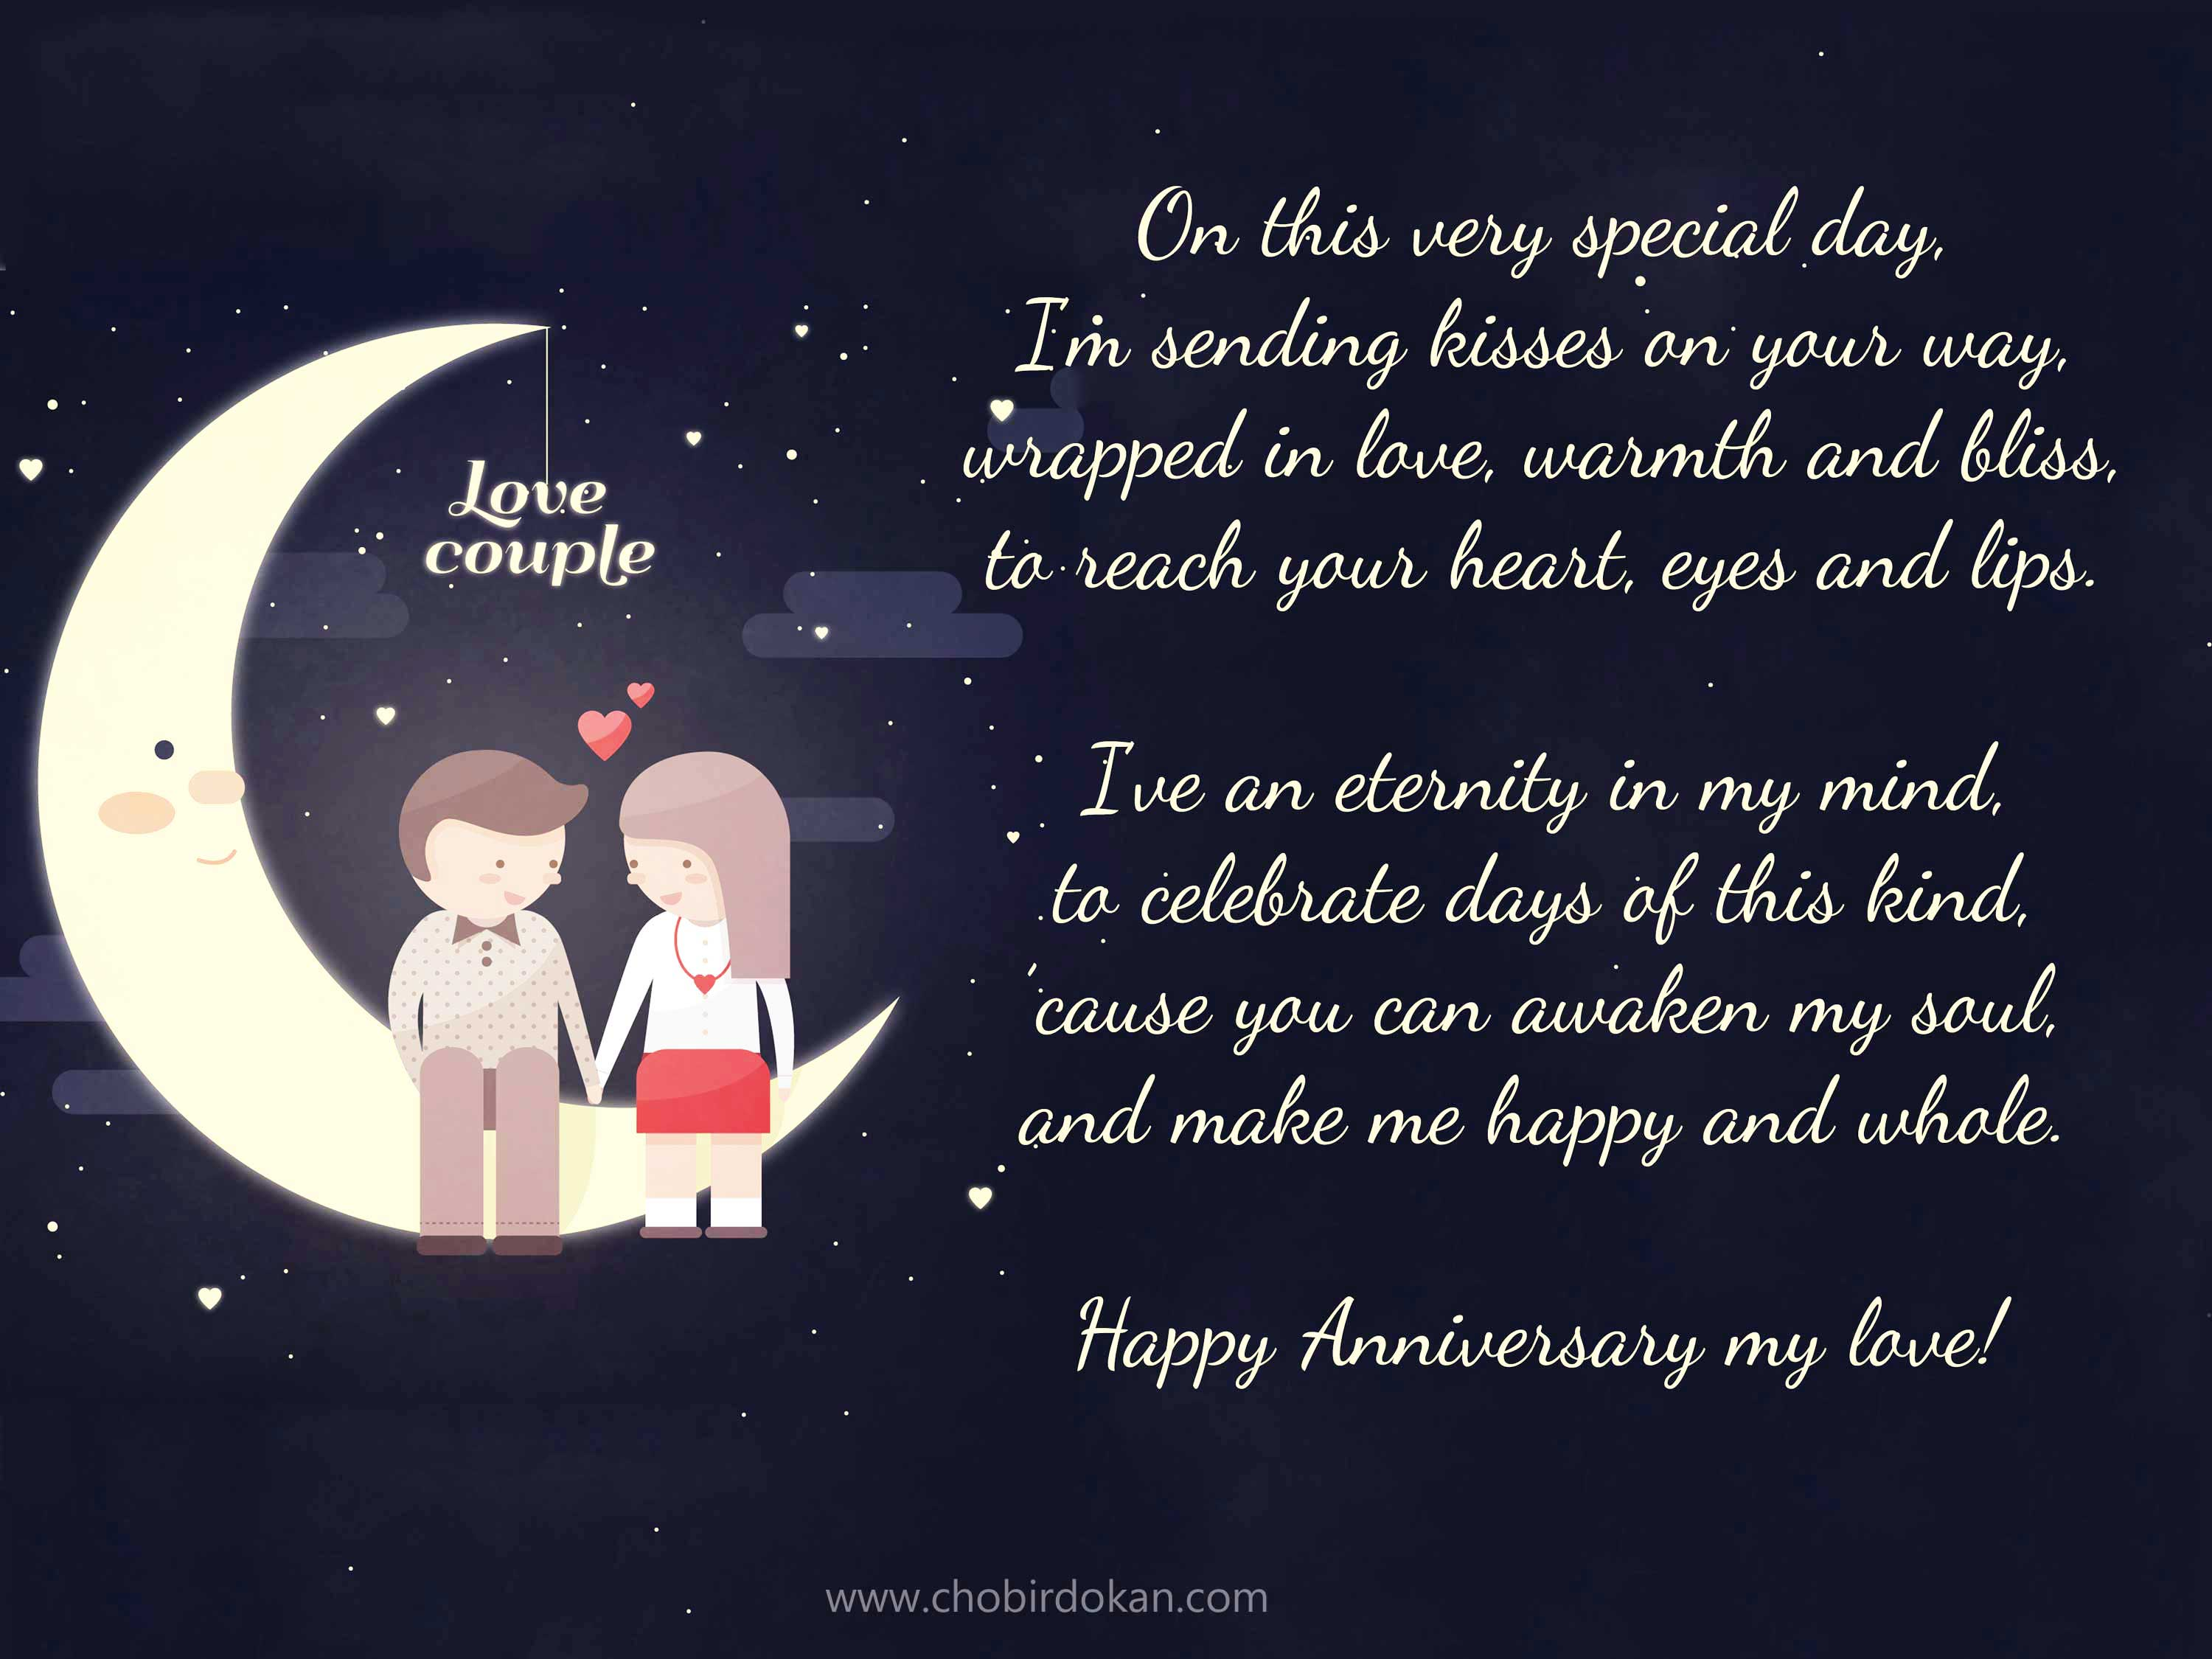 Romantic Anniversary Poems For Her For Wife Or Girlfriend